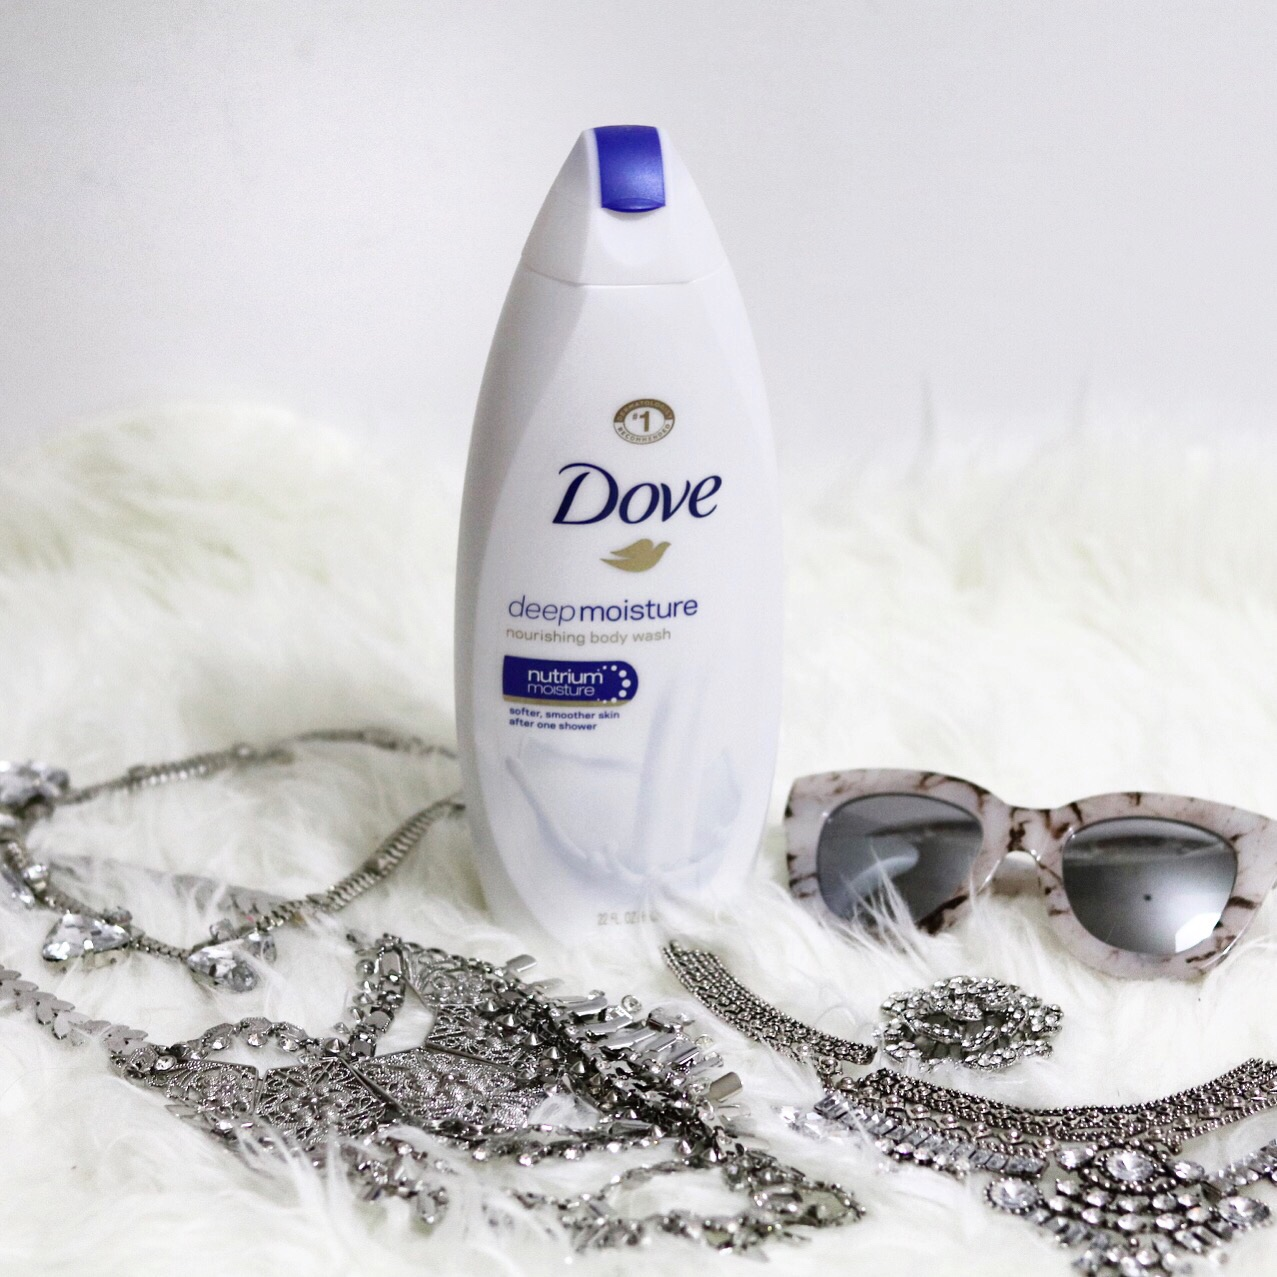 Dove Deep Moisture Body Wash is available at Northgate stores.